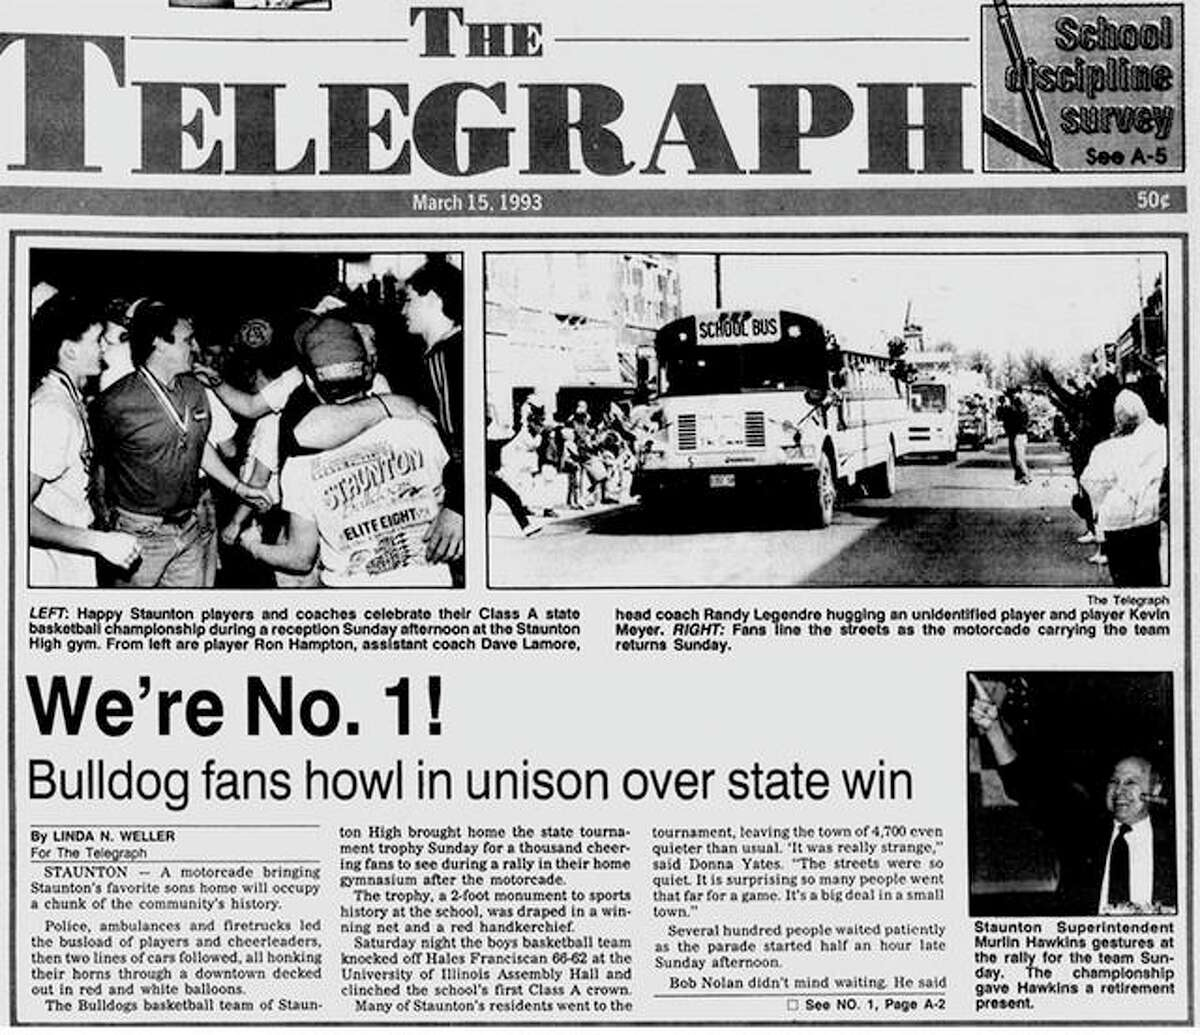 The front page of the March 15, 1993 edition of The Telegraph covers Staunton's welcome-home celebration after the Bulldogs won the Class A state championship in Champaign.